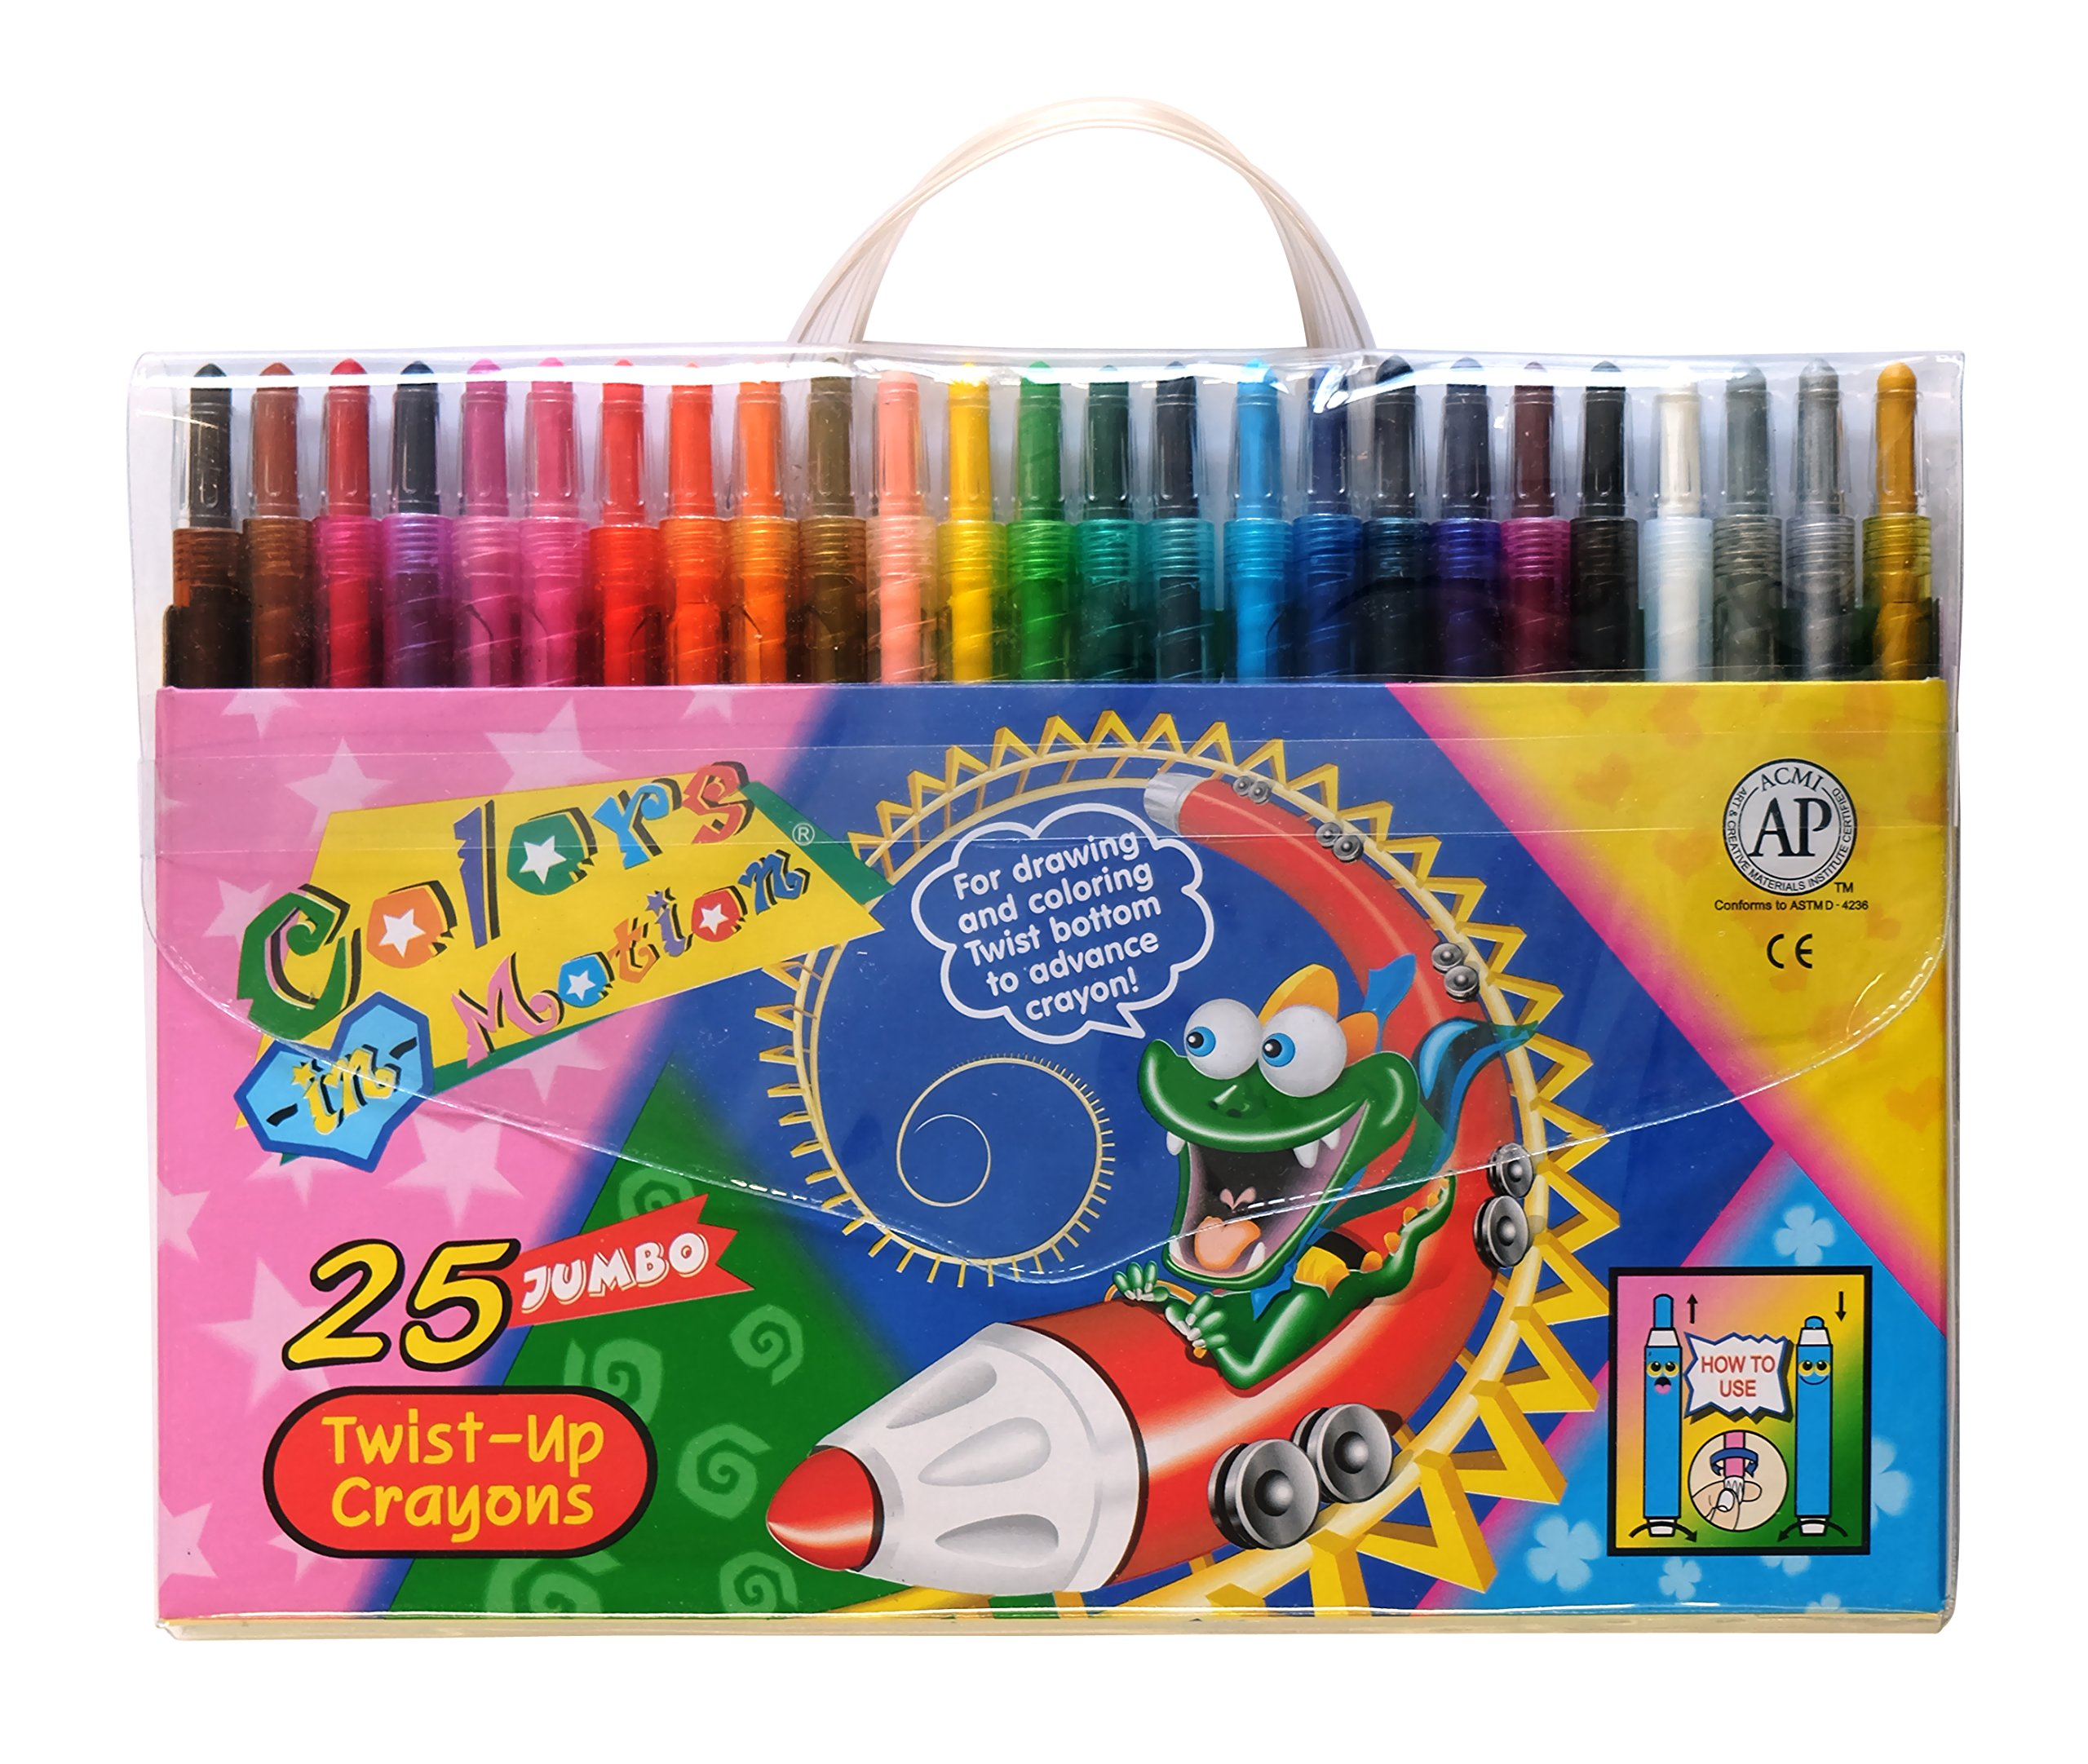 25 Colors-in-Motion Twist-up Crayons, Colored Pencils, Kids Crayon, Adult Coloring, Professional Drawing (7 in length)